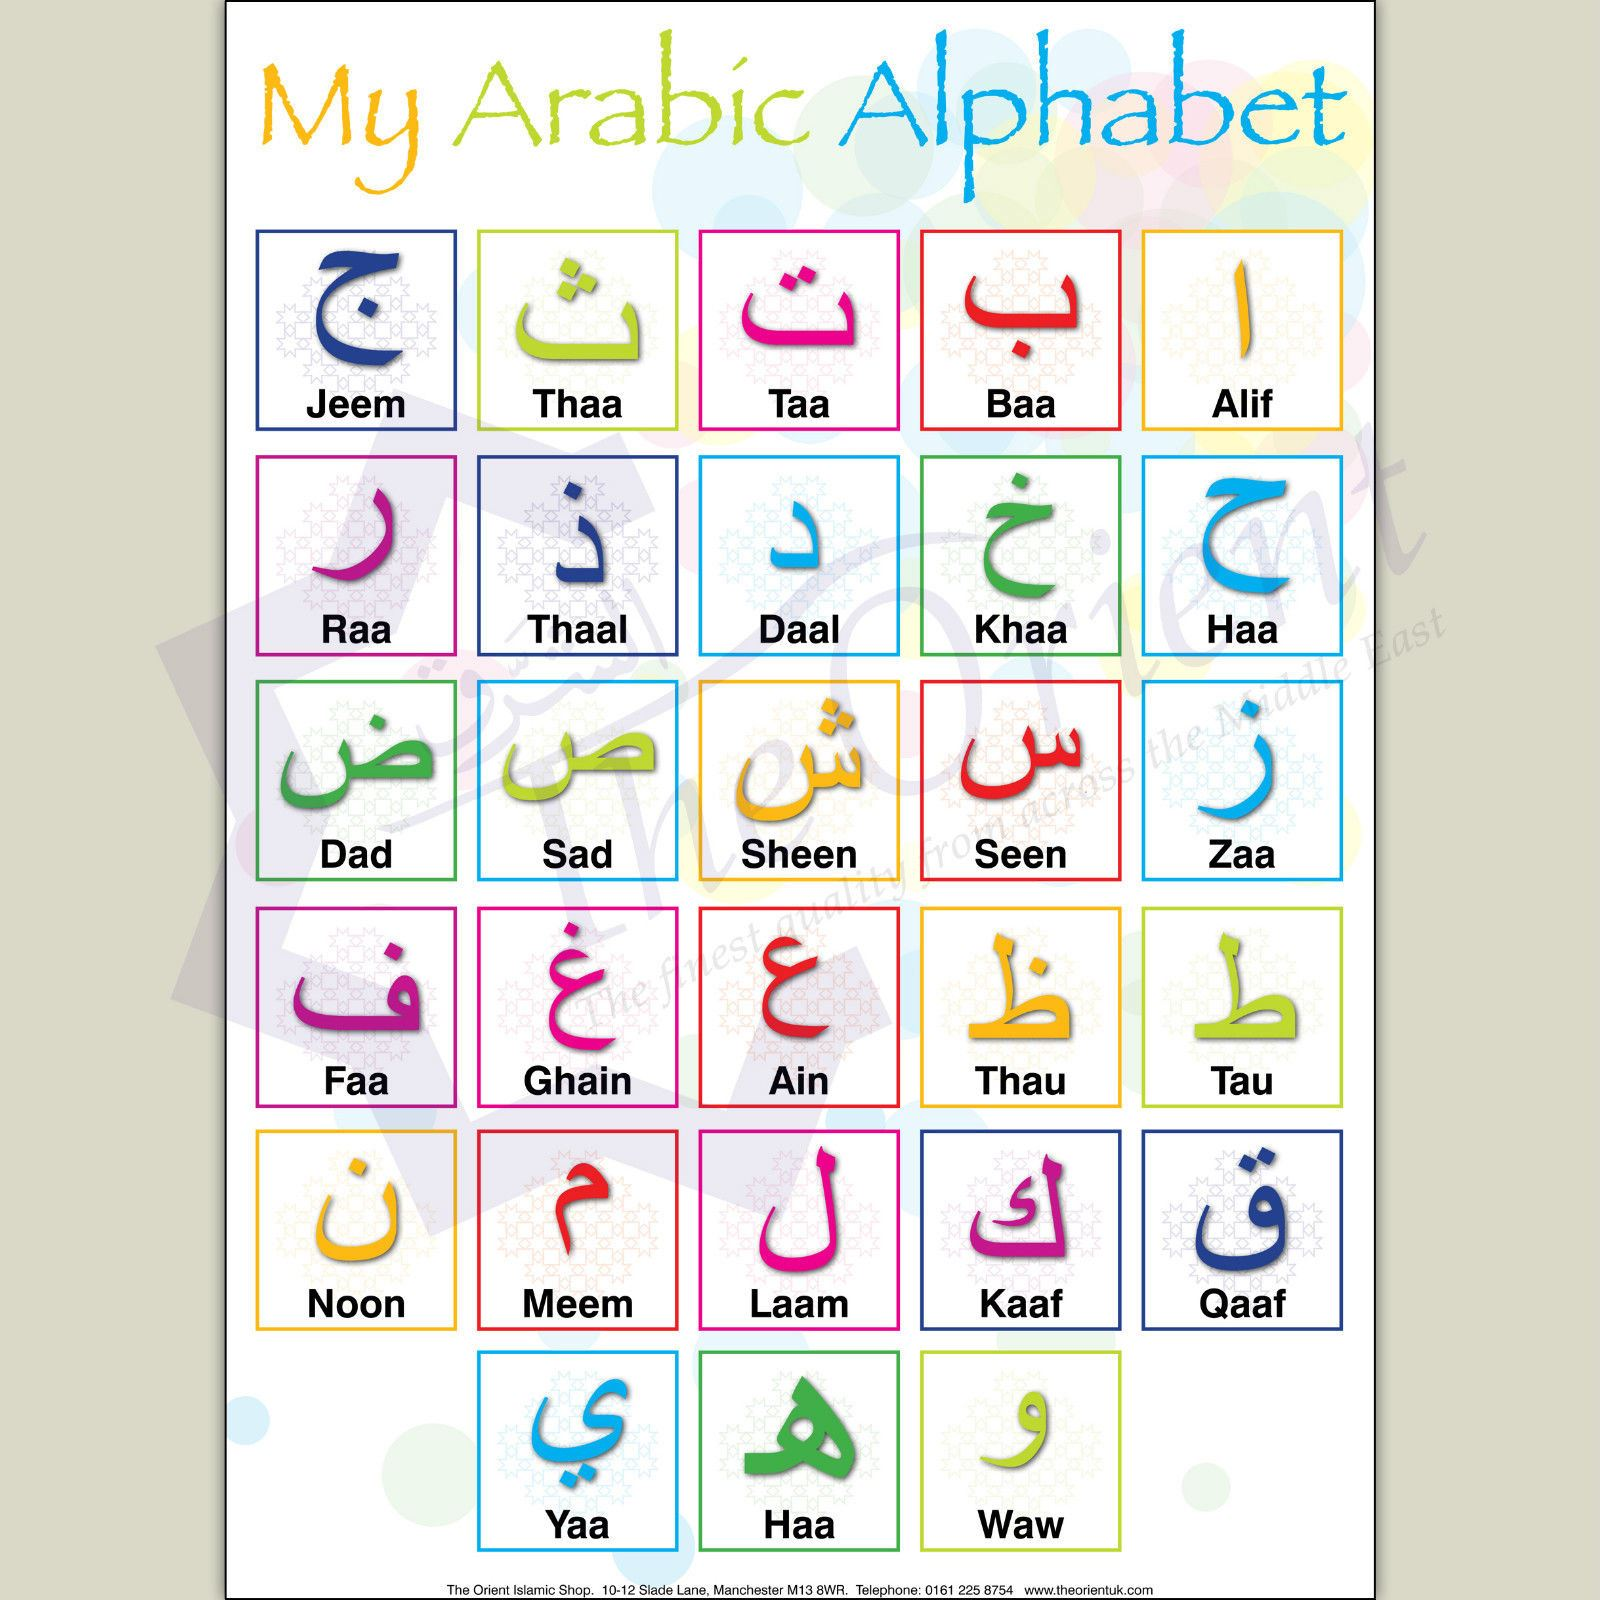 My Arabic Alphabet A3 Learning Poster Teaching Arabic Language ...